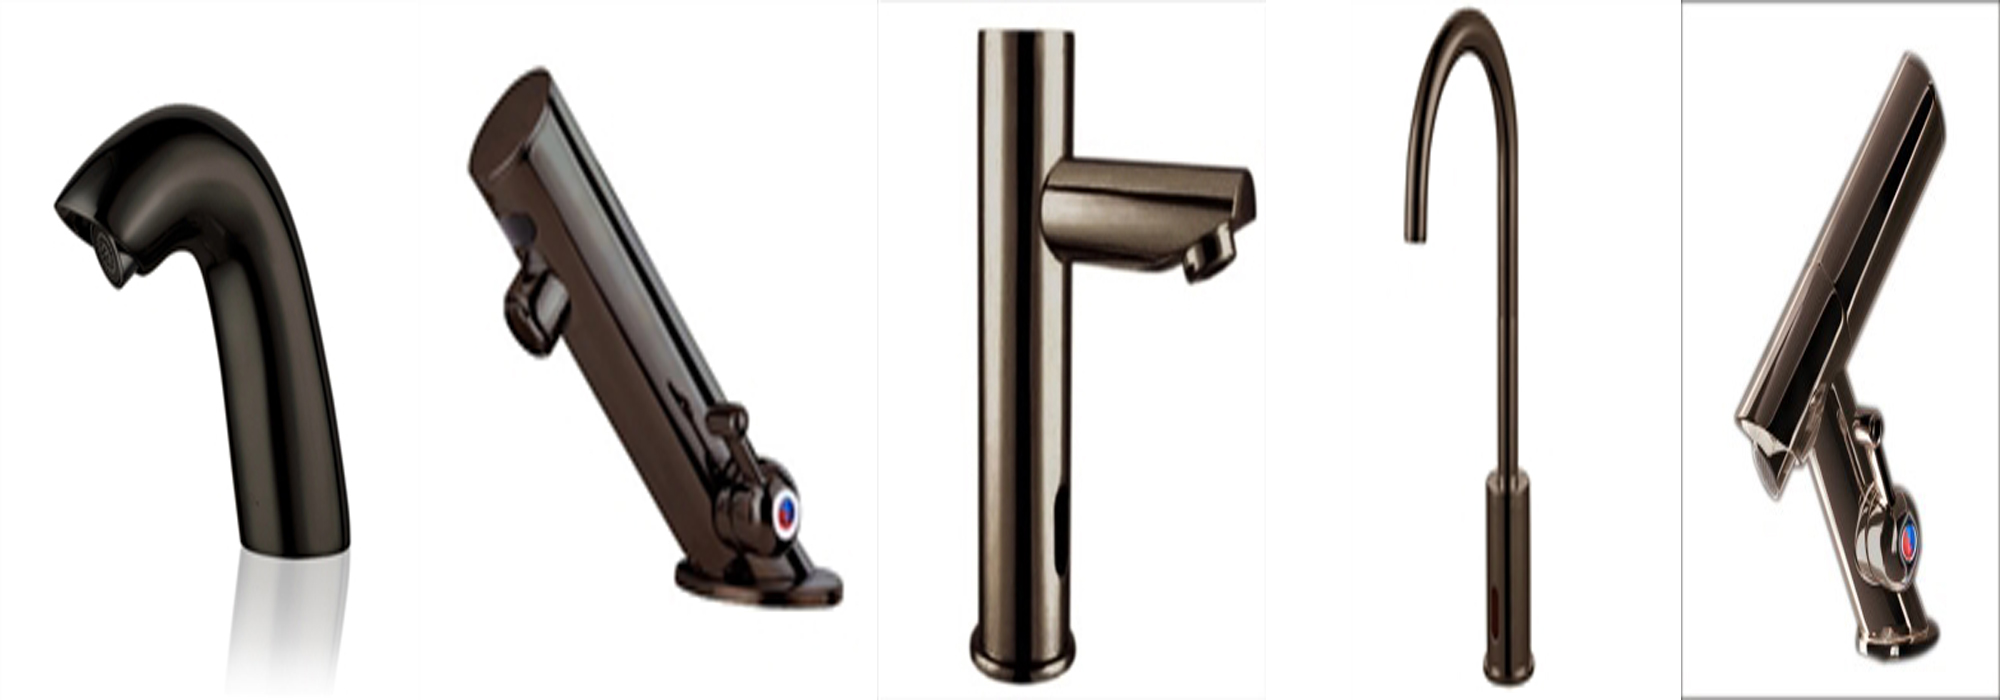 ... Automatic Kitchen Faucet Rubbed Bronze Motion Sensor Faucets ...